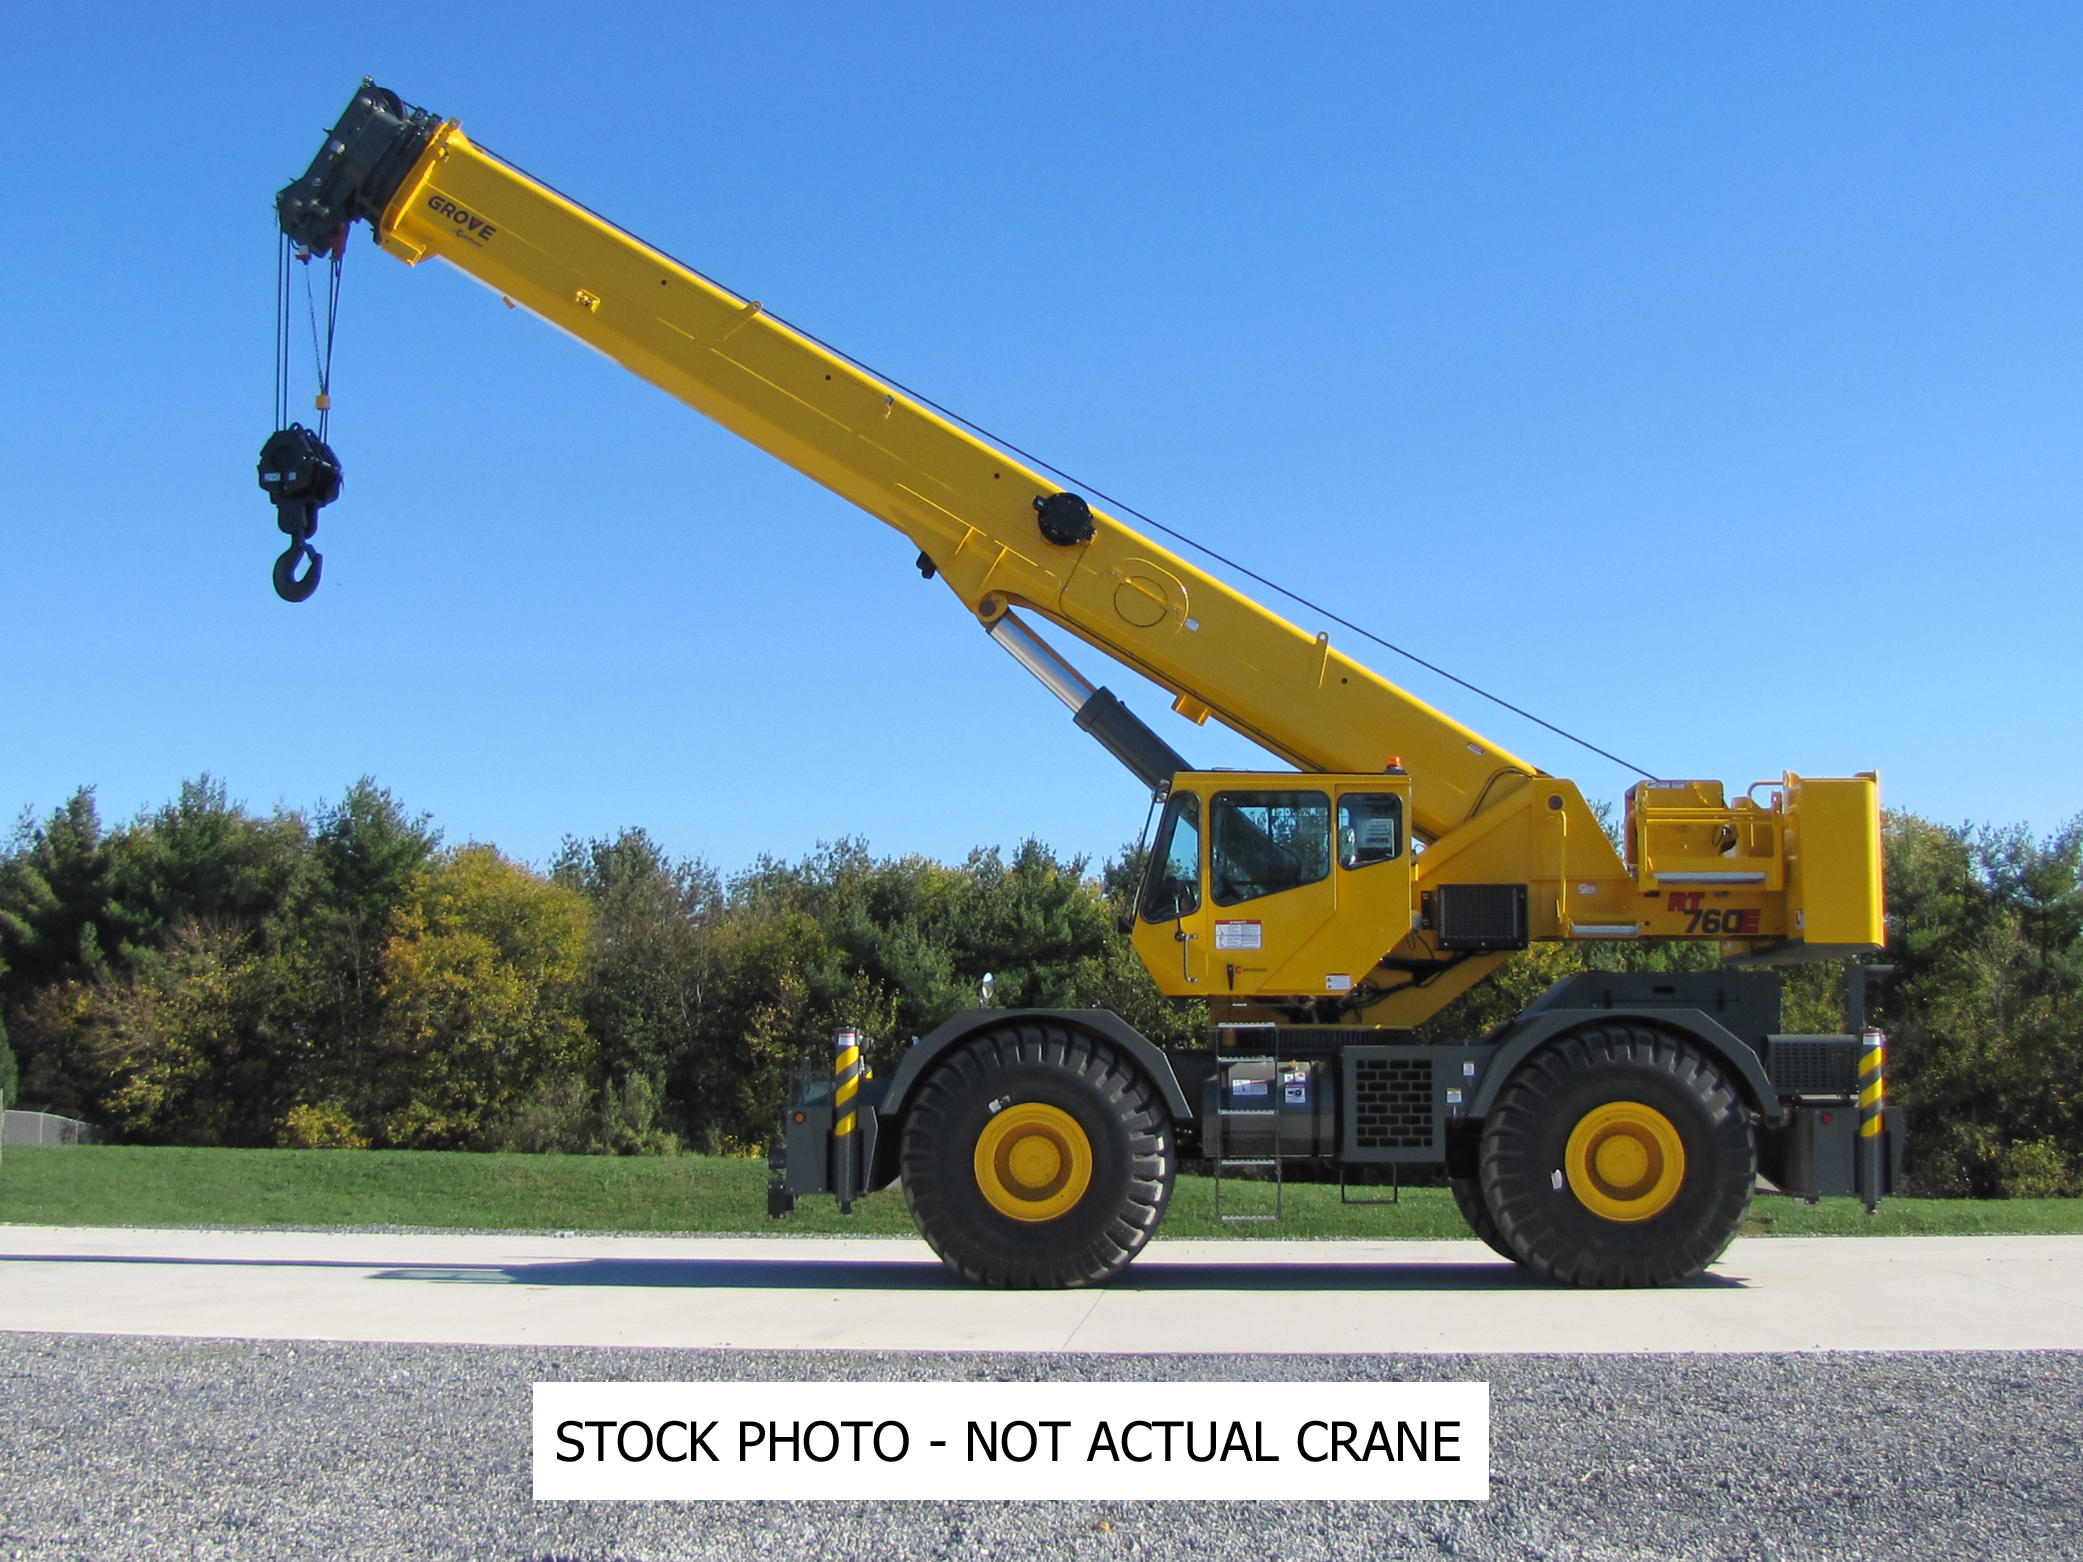 2010 Grove RT760E - 60 Ton Rough Terrain Crane